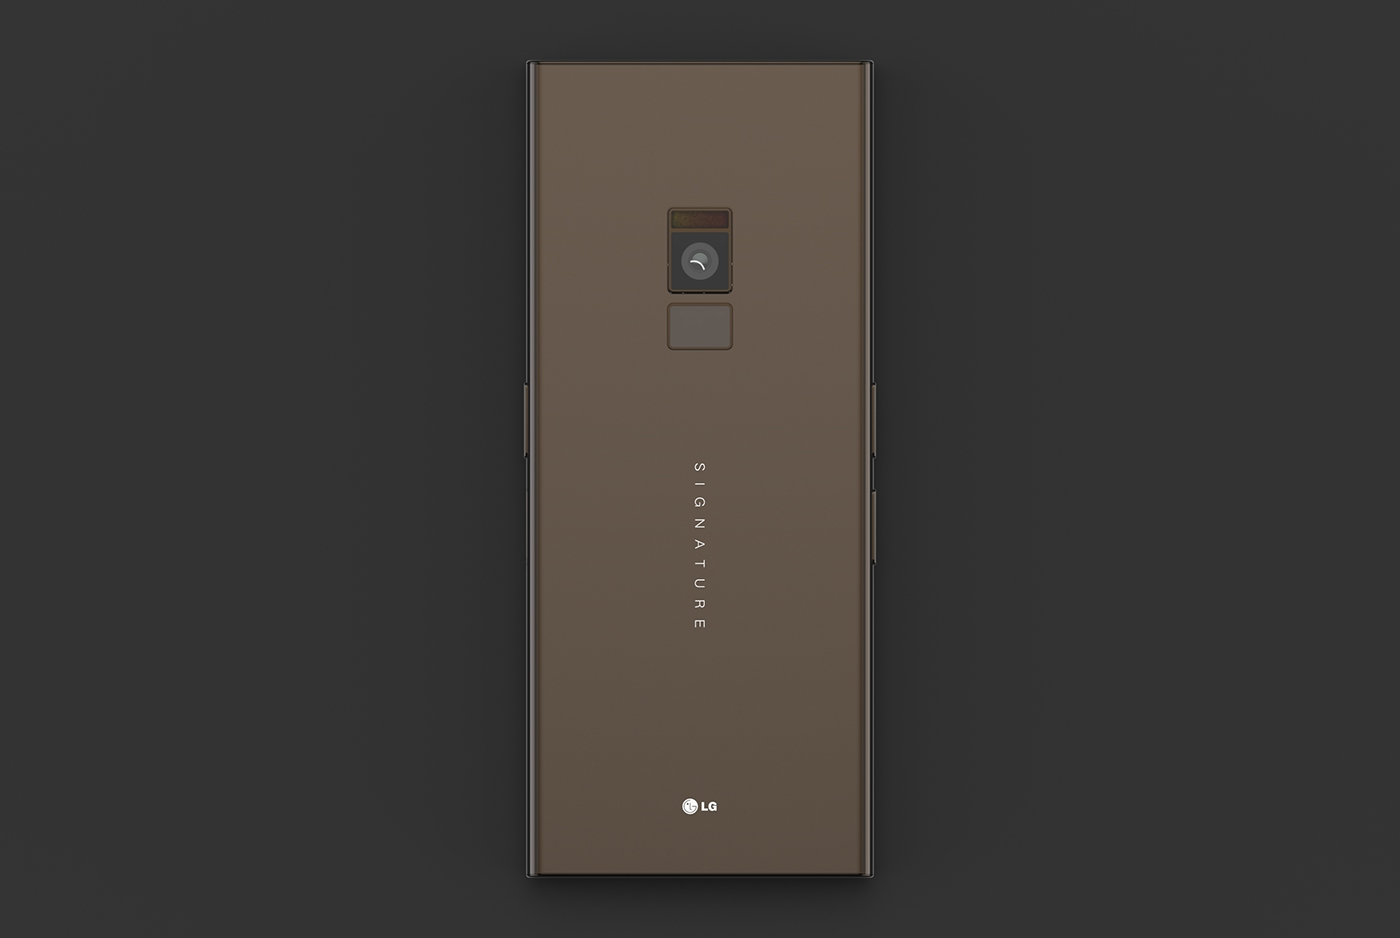 LG-Chocolate-U-concept-phone-4.jpg